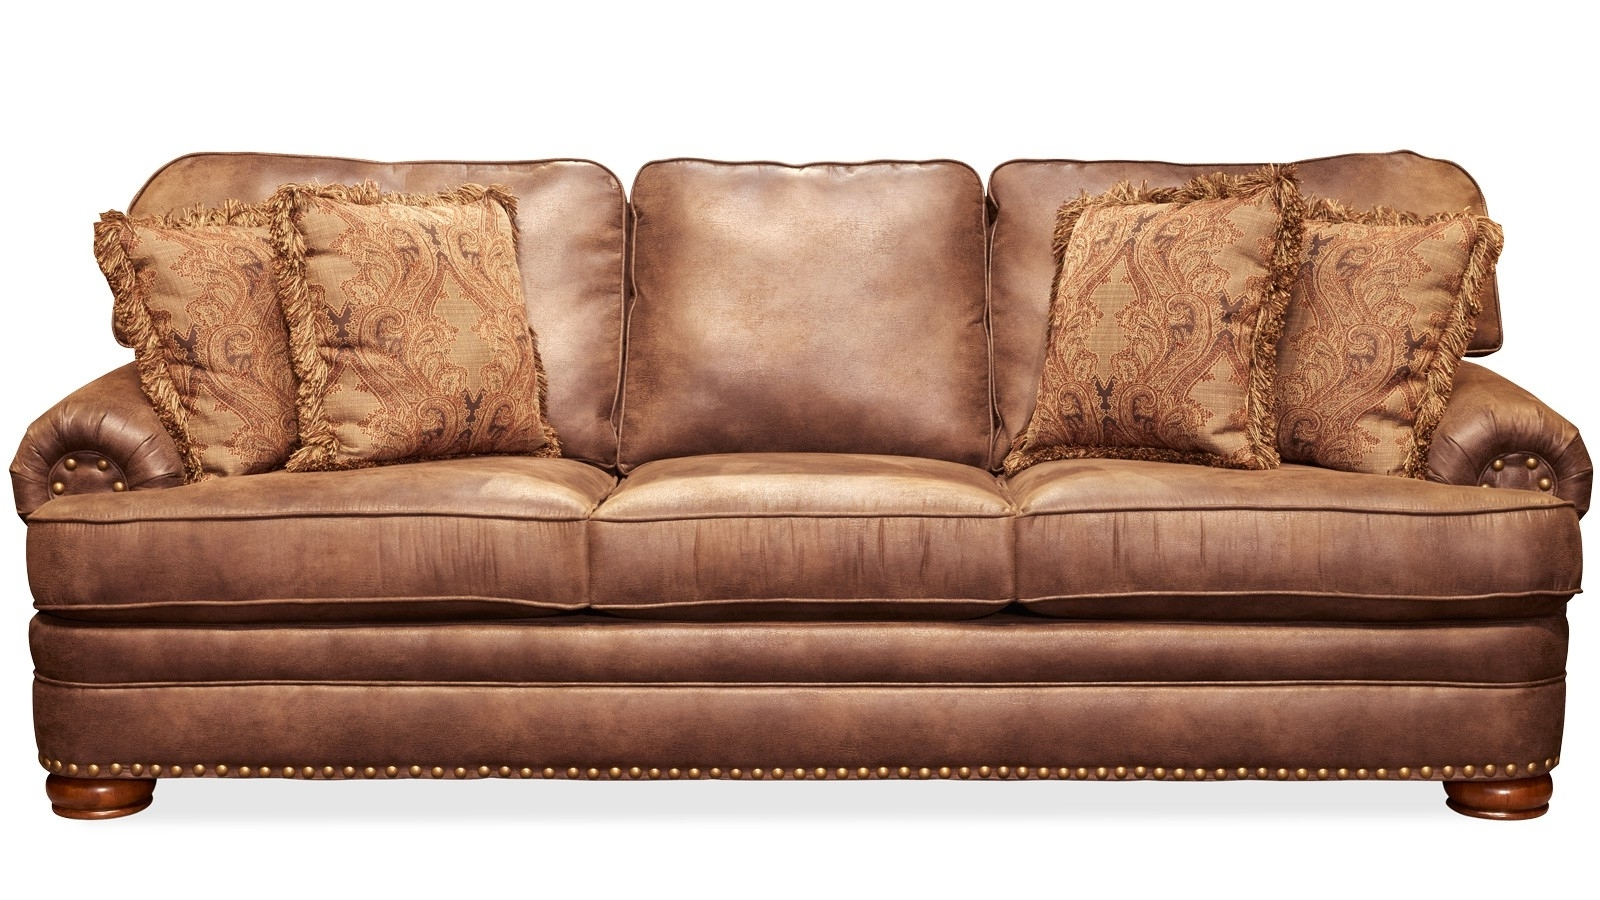 Gallery Furniture With El Paso Tx Sectional Sofas (View 8 of 15)